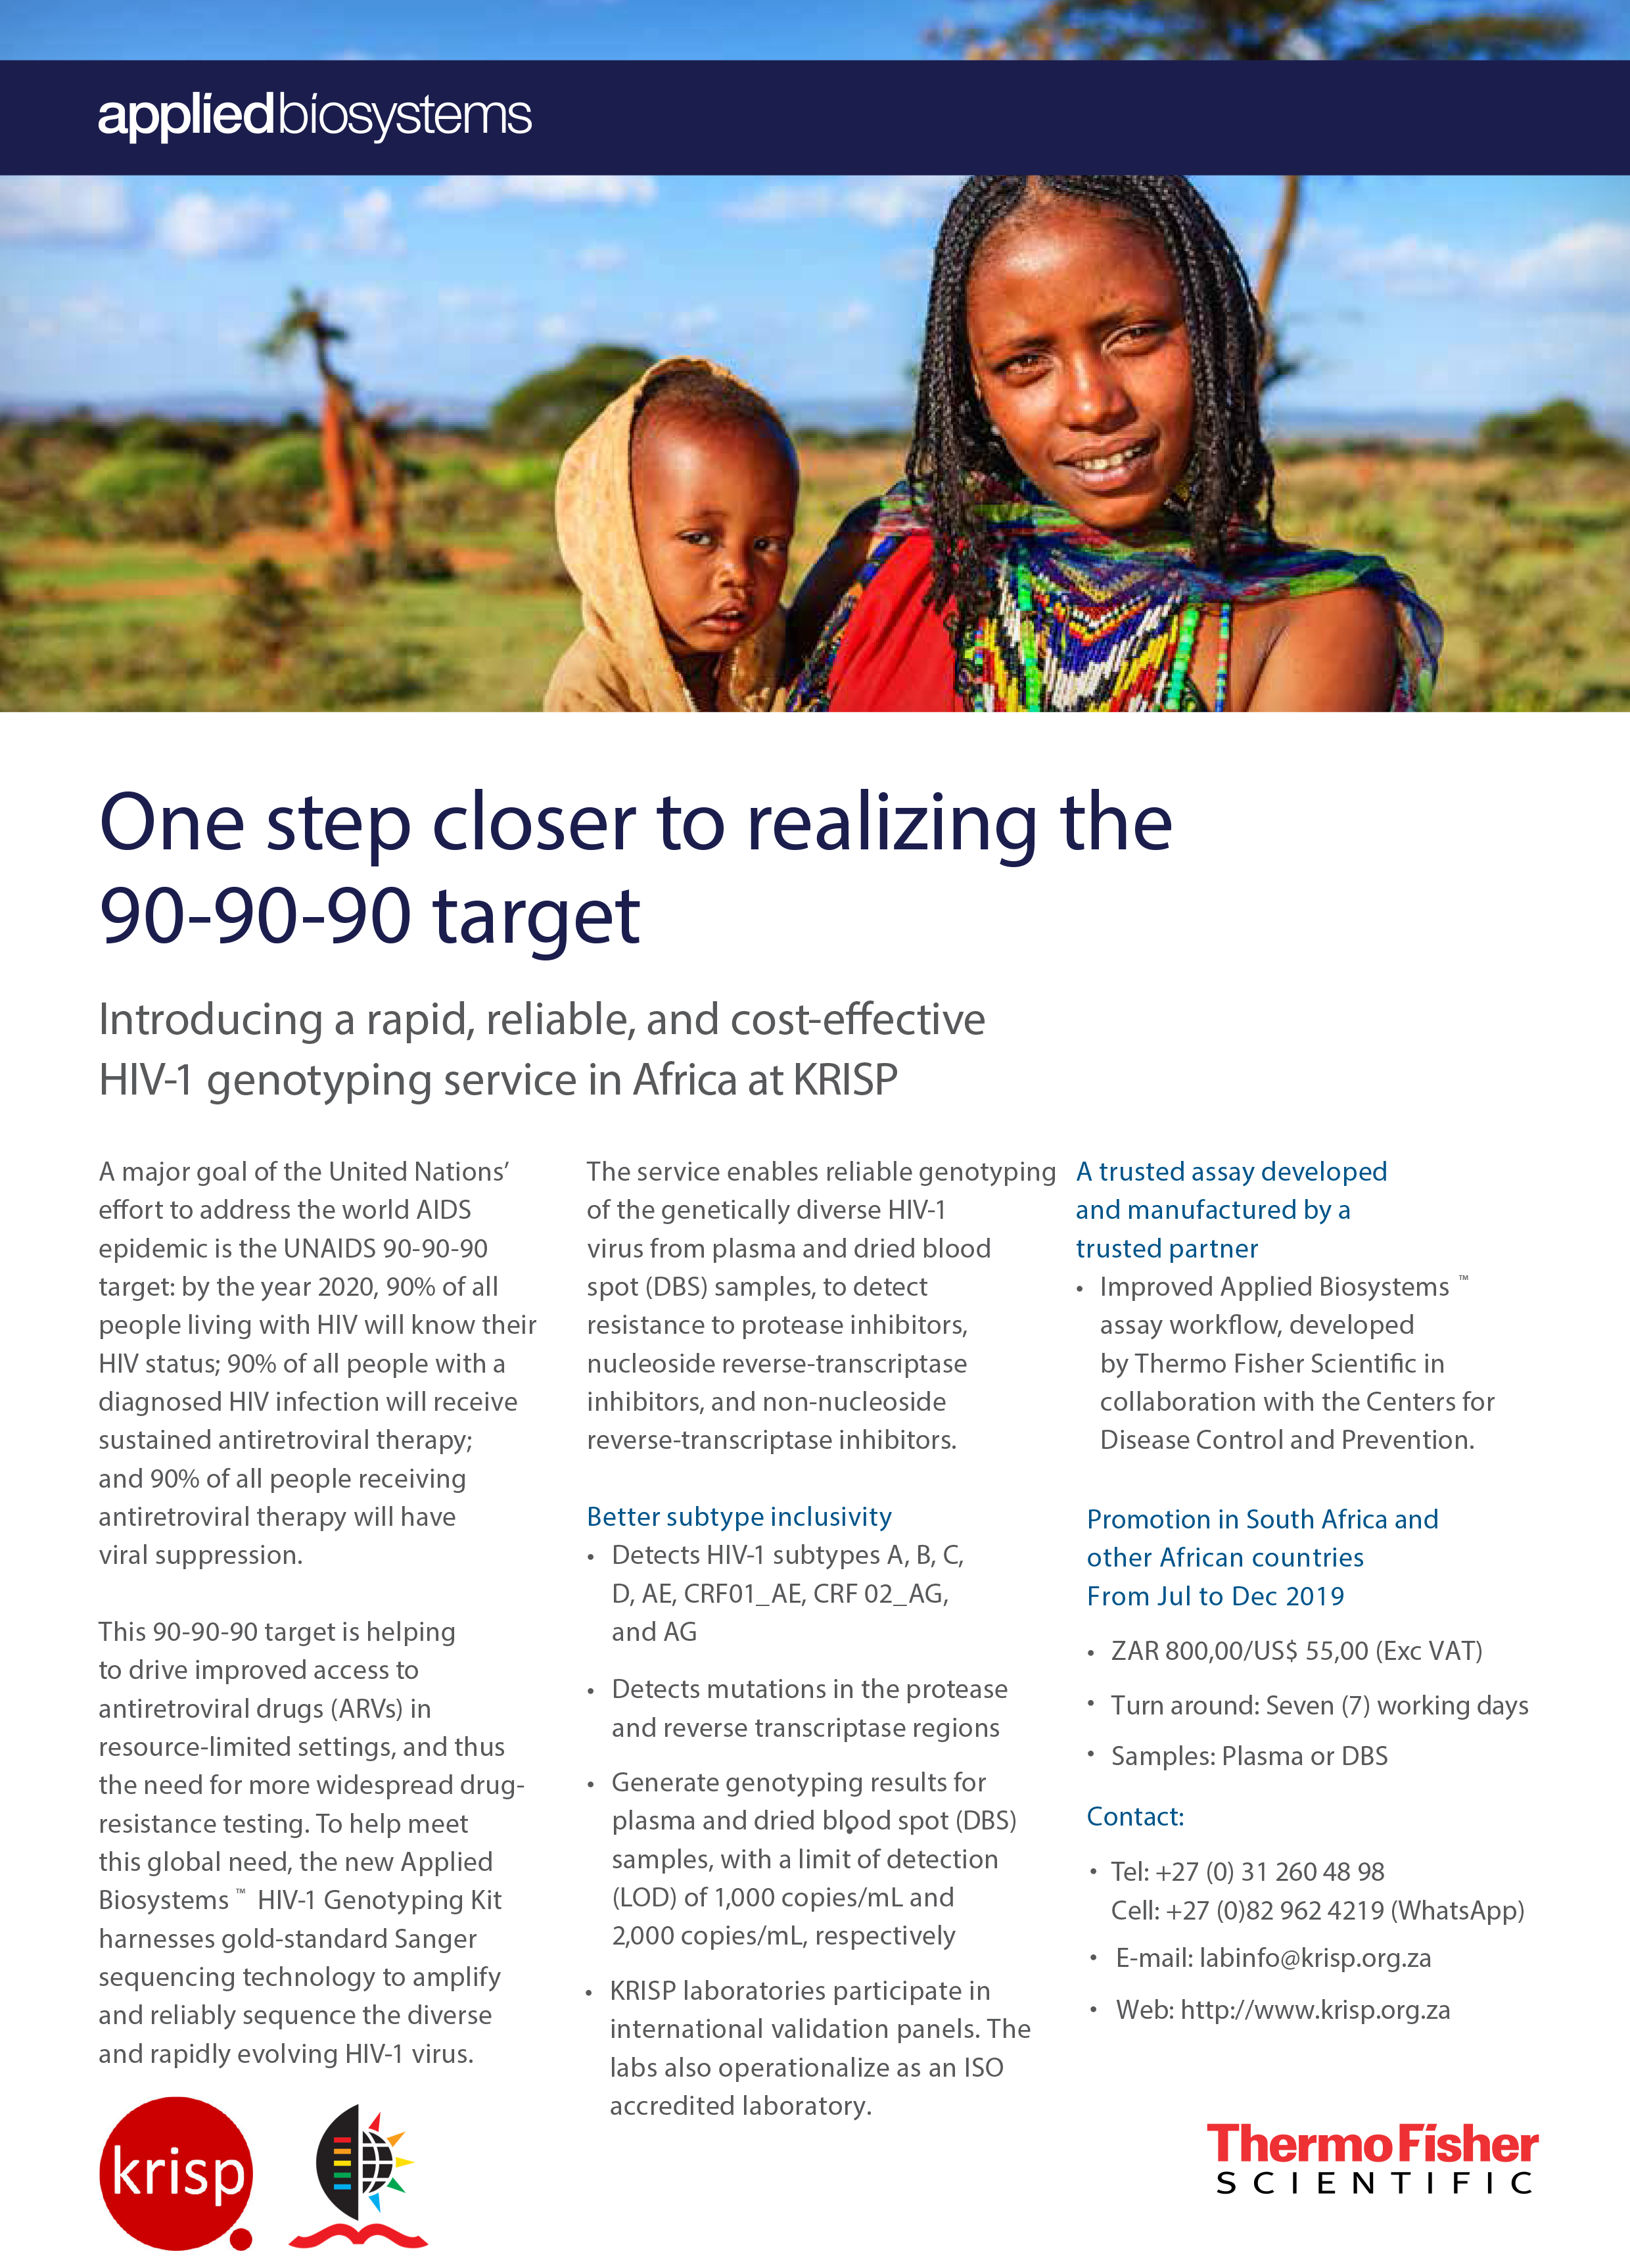 HIV-1 genotyping service in Africa: rapid, reliable, and cost-effective by KRISP and Thermo Fisher Scientific